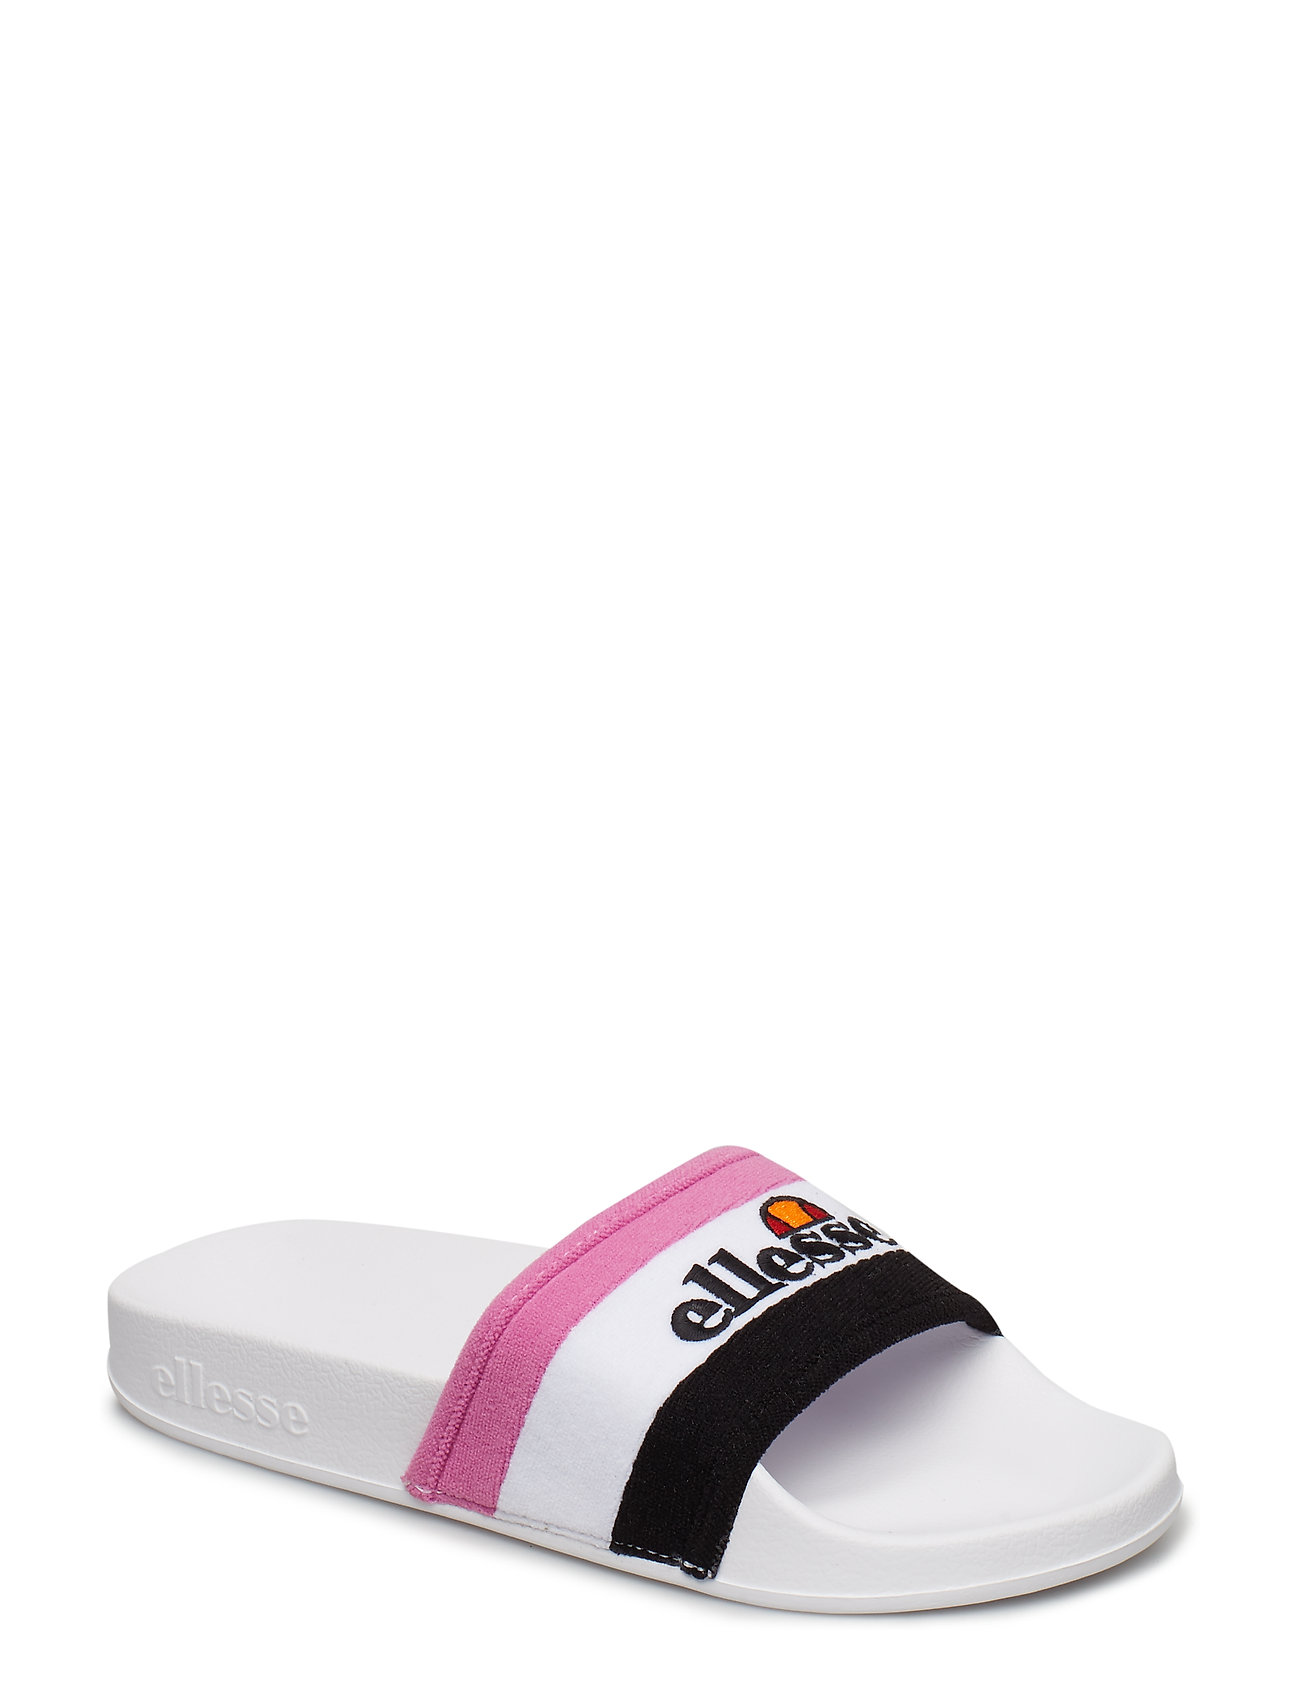 Ellesse EL BORGARO BLACK/WHITE/SUPER PINK - BLACK/WHITE/SUPER PINK